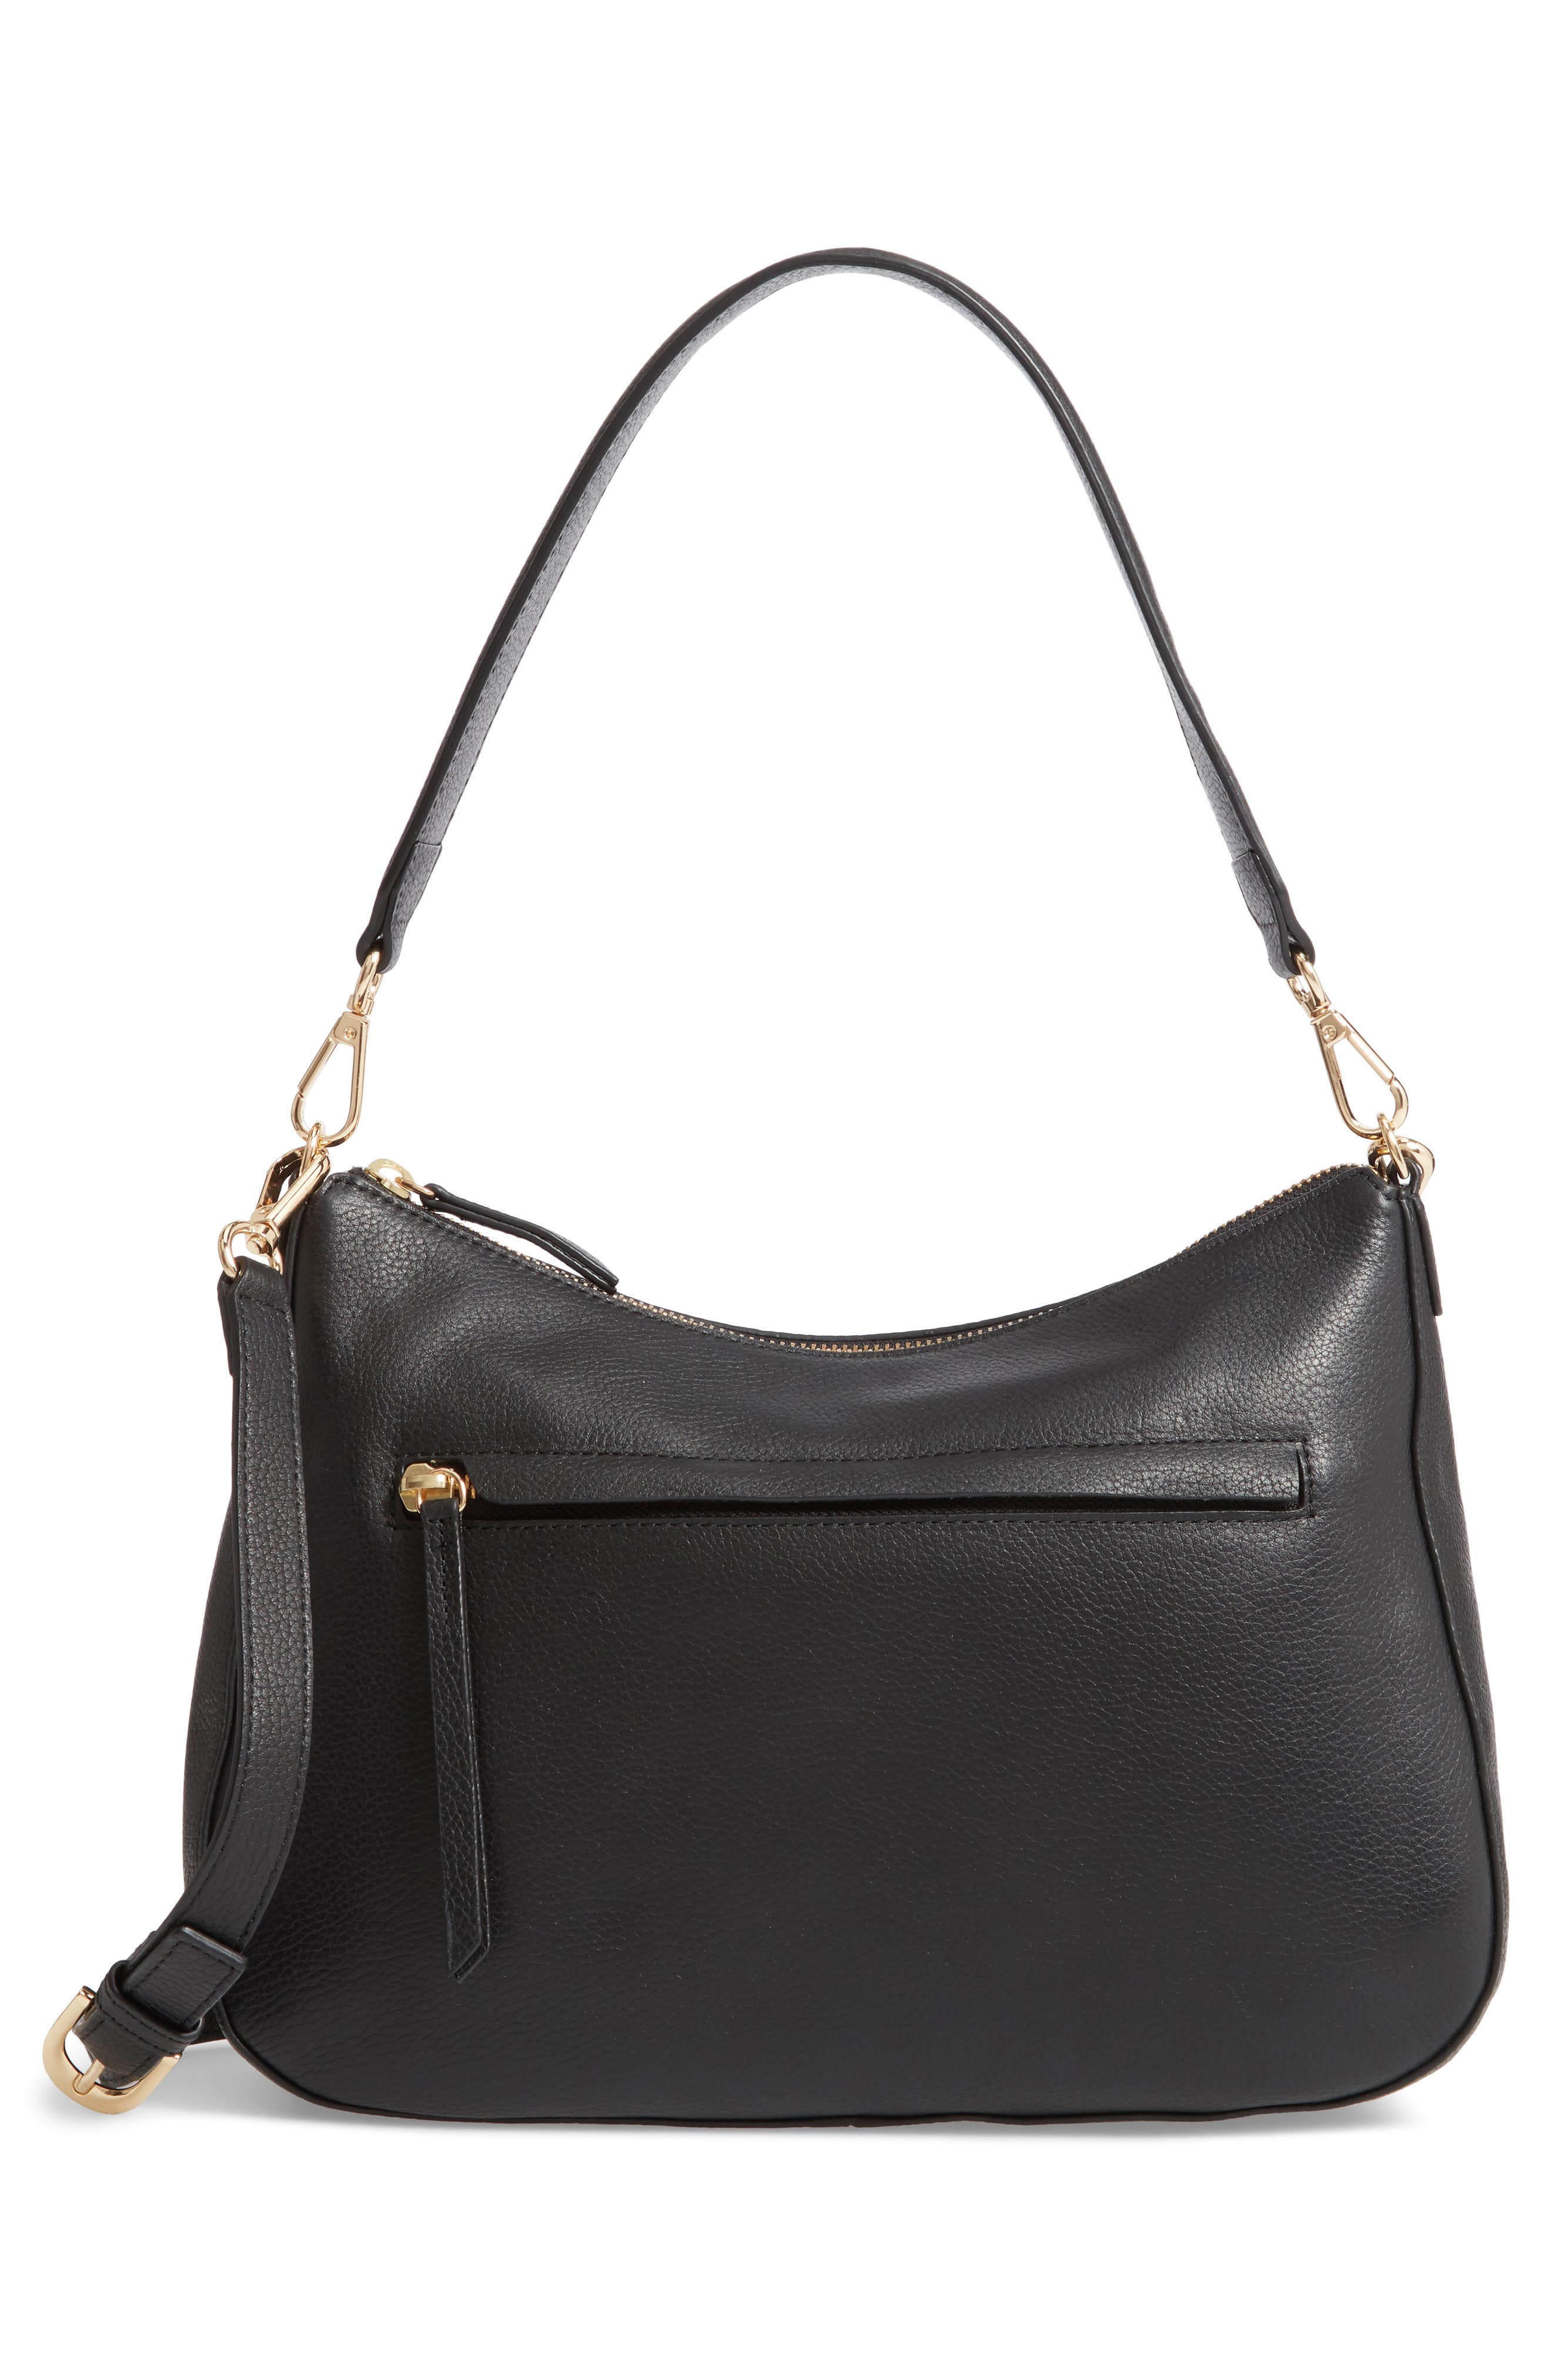 NORDSTROM, Finn Convertible Leather Hobo, Alternate thumbnail 4, color, BLACK